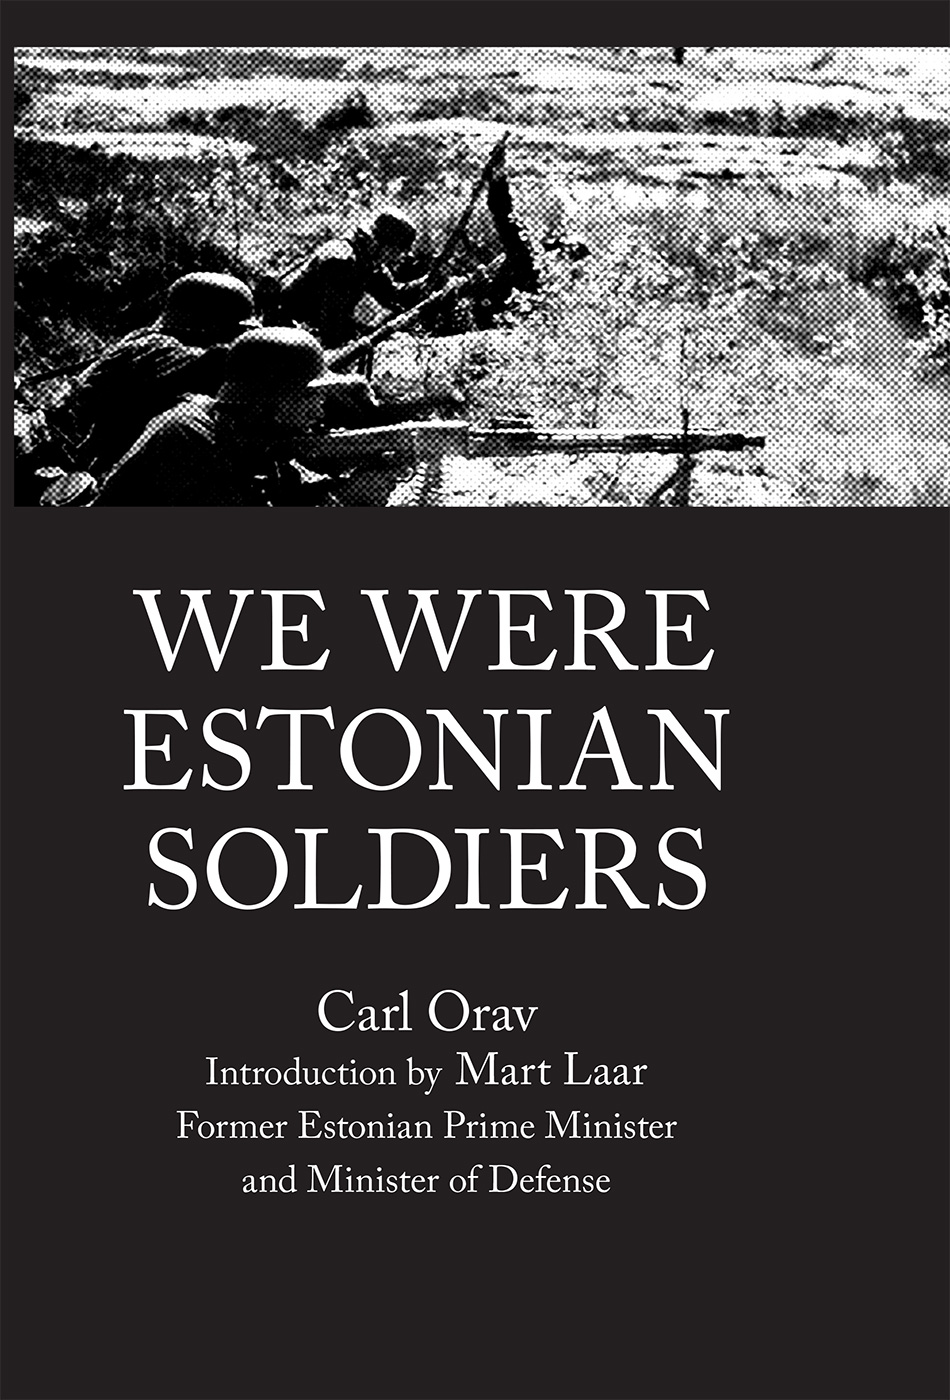 Carl Orav WE WERE ESTONIAN SOLDIERS